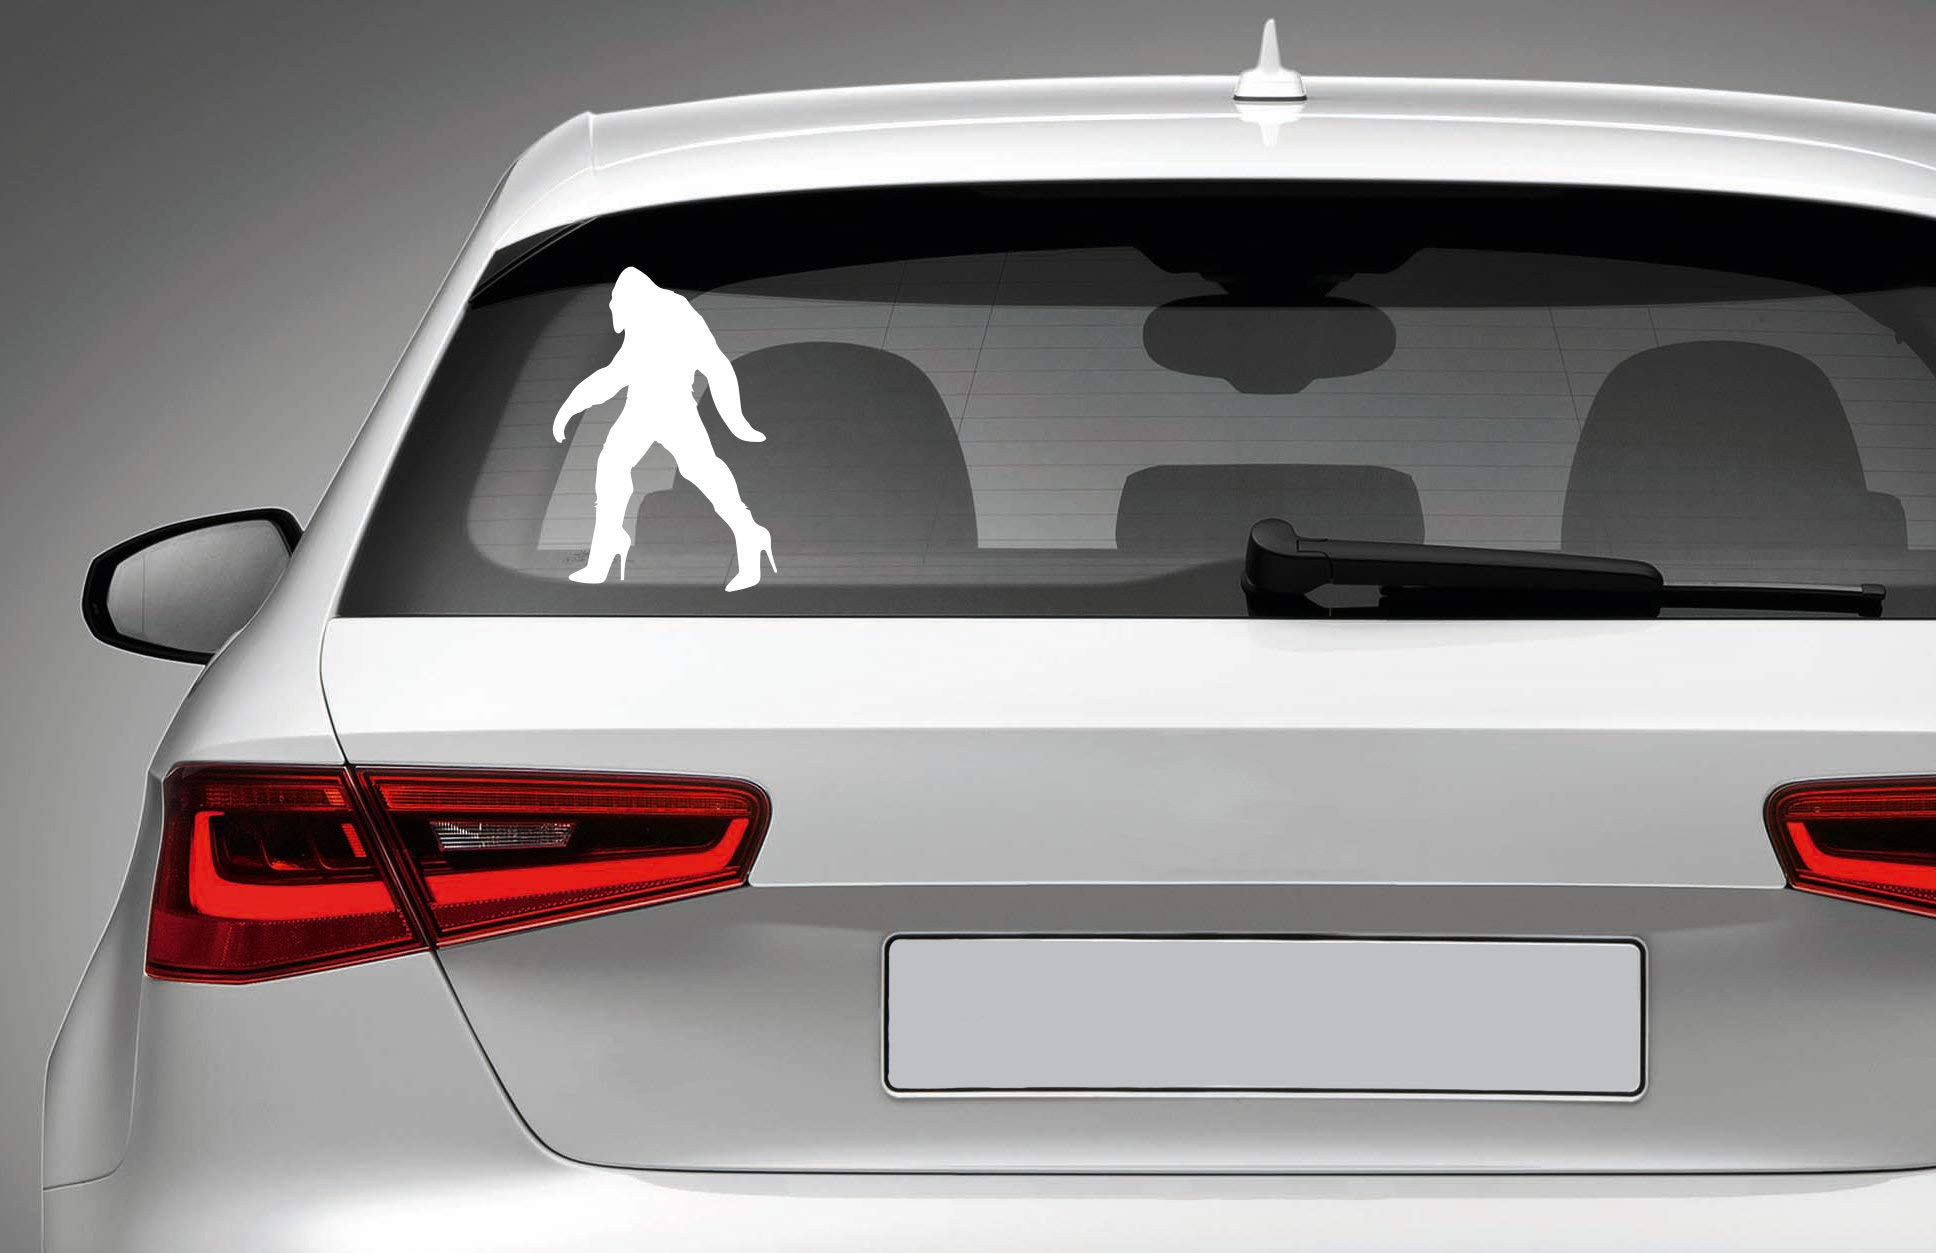 Sticker for Car Truck Bumper Window Wall Laptop BIGFOOT SASQUATCH Vinyl Decal